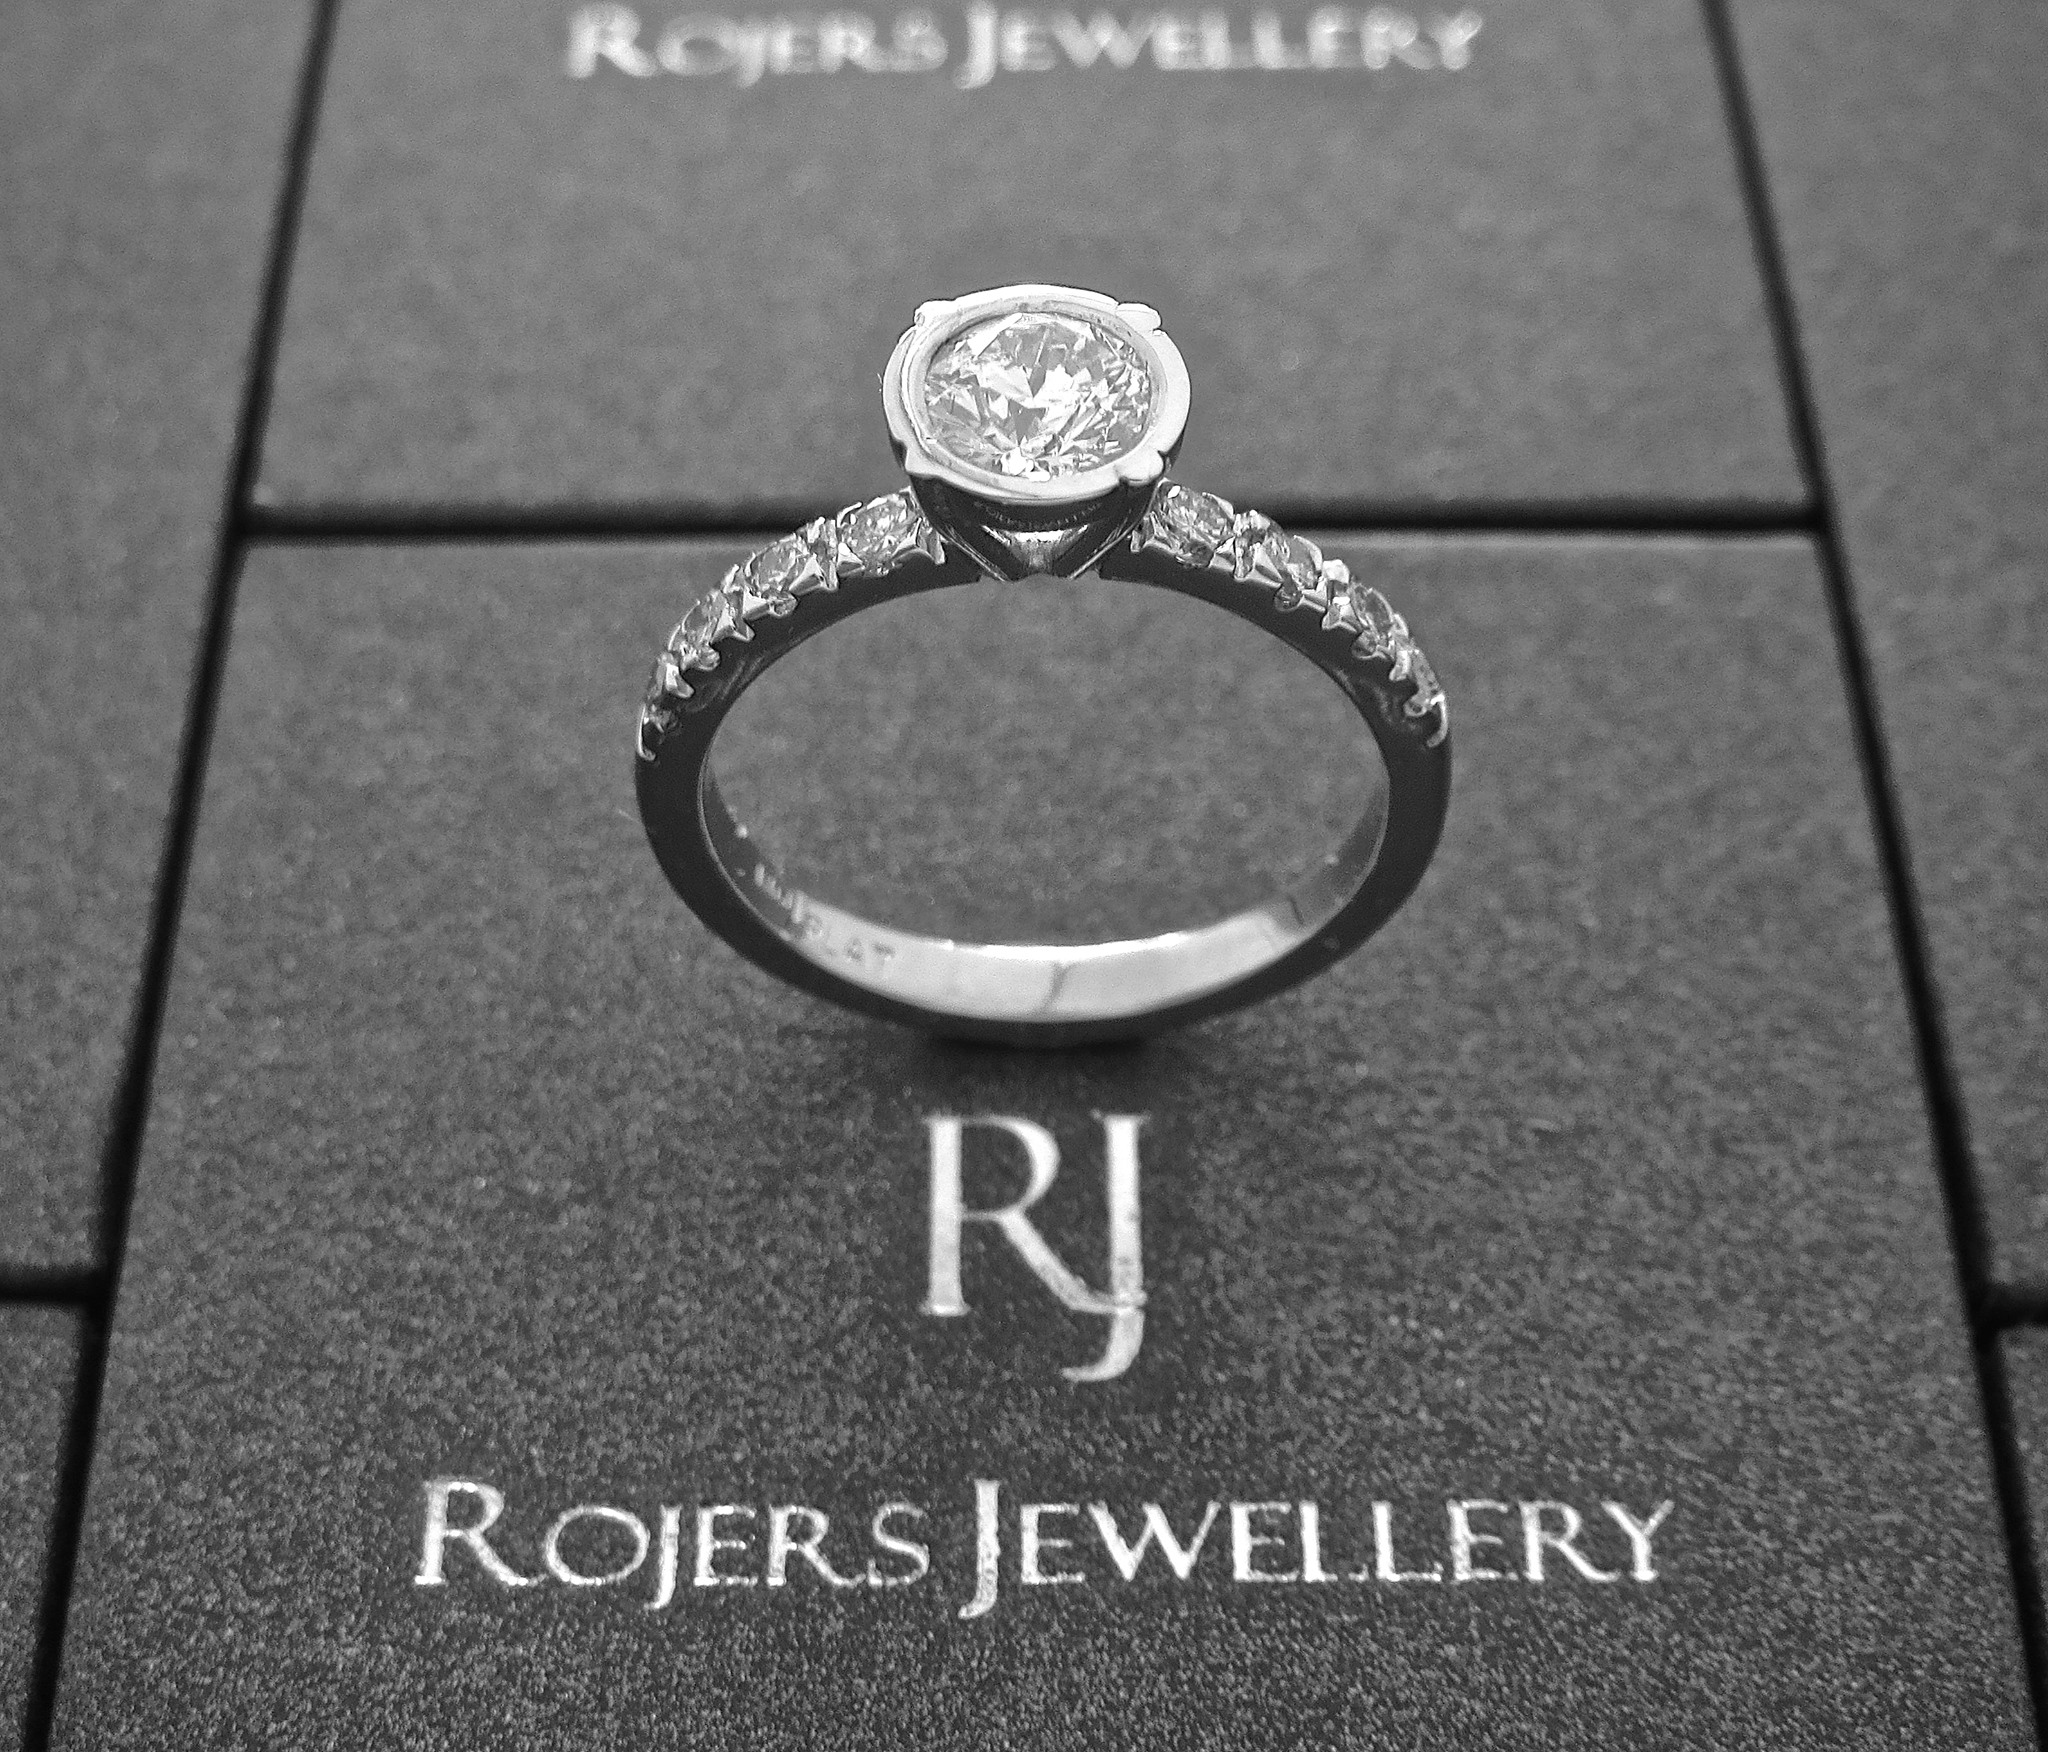 Rojers Jewellery